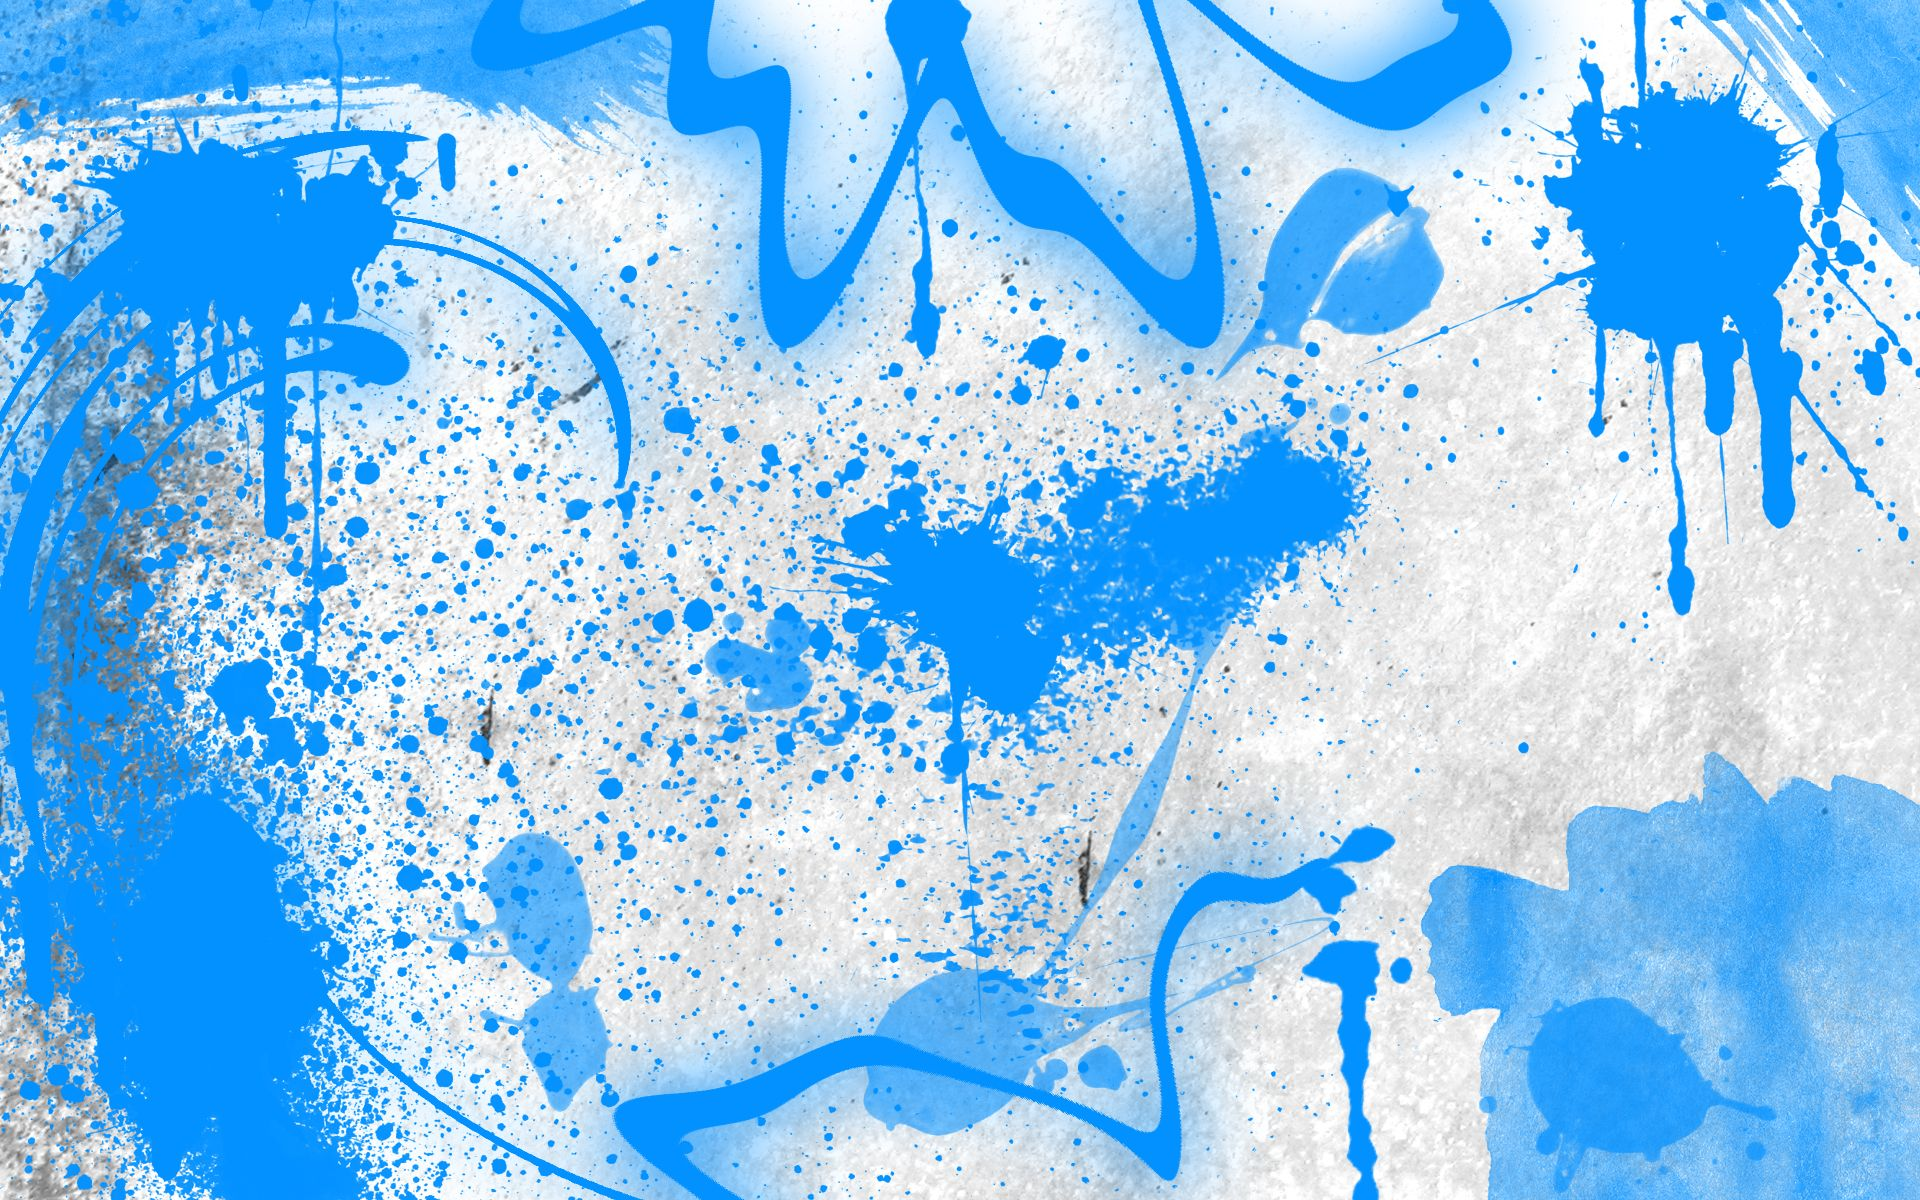 Zoom White Blue Graffiti Screensaver Abstract wallpaper